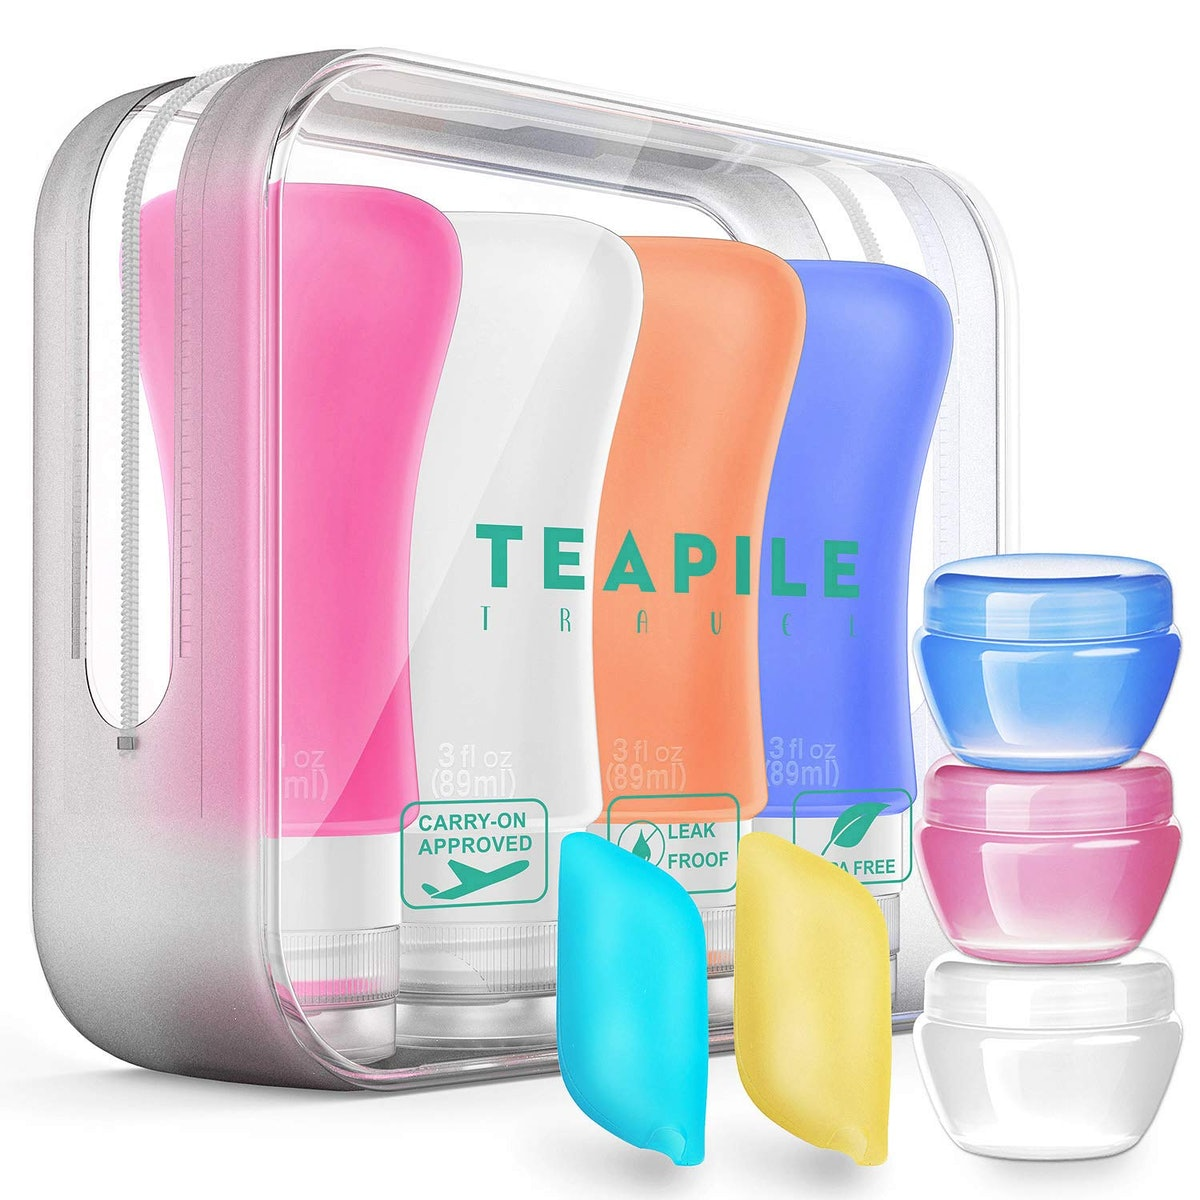 Teapile TSA Approved Containers (9-Piece Set)